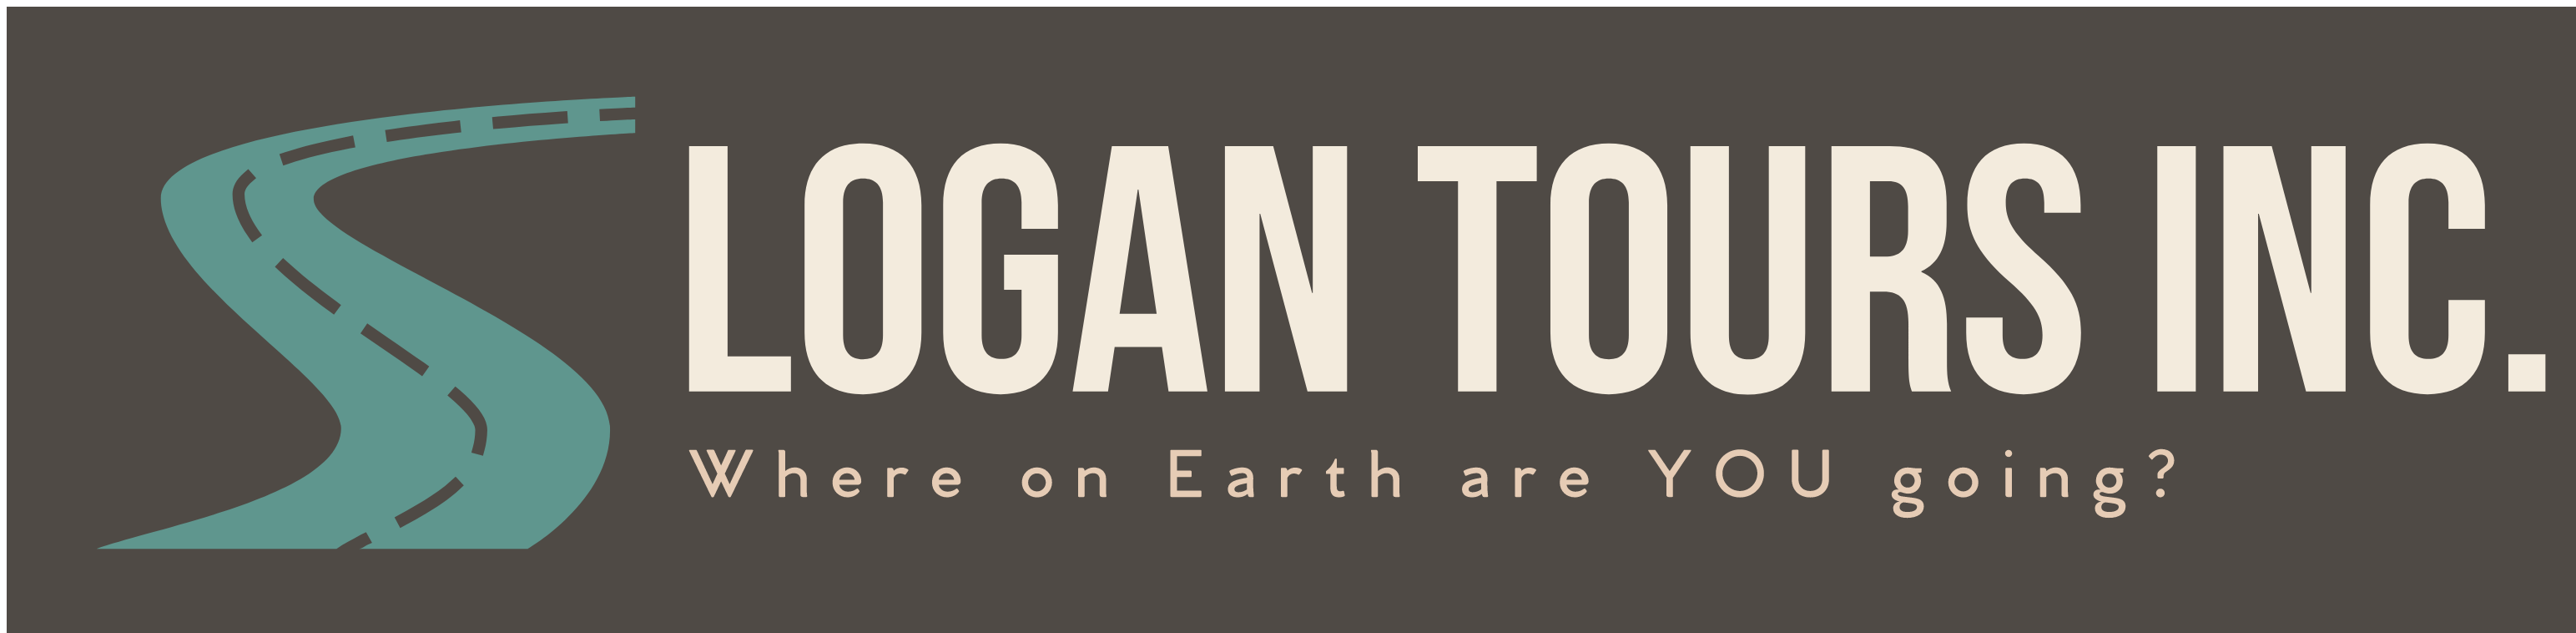 Logan Tours, Inc Where on Earth or YOU going?